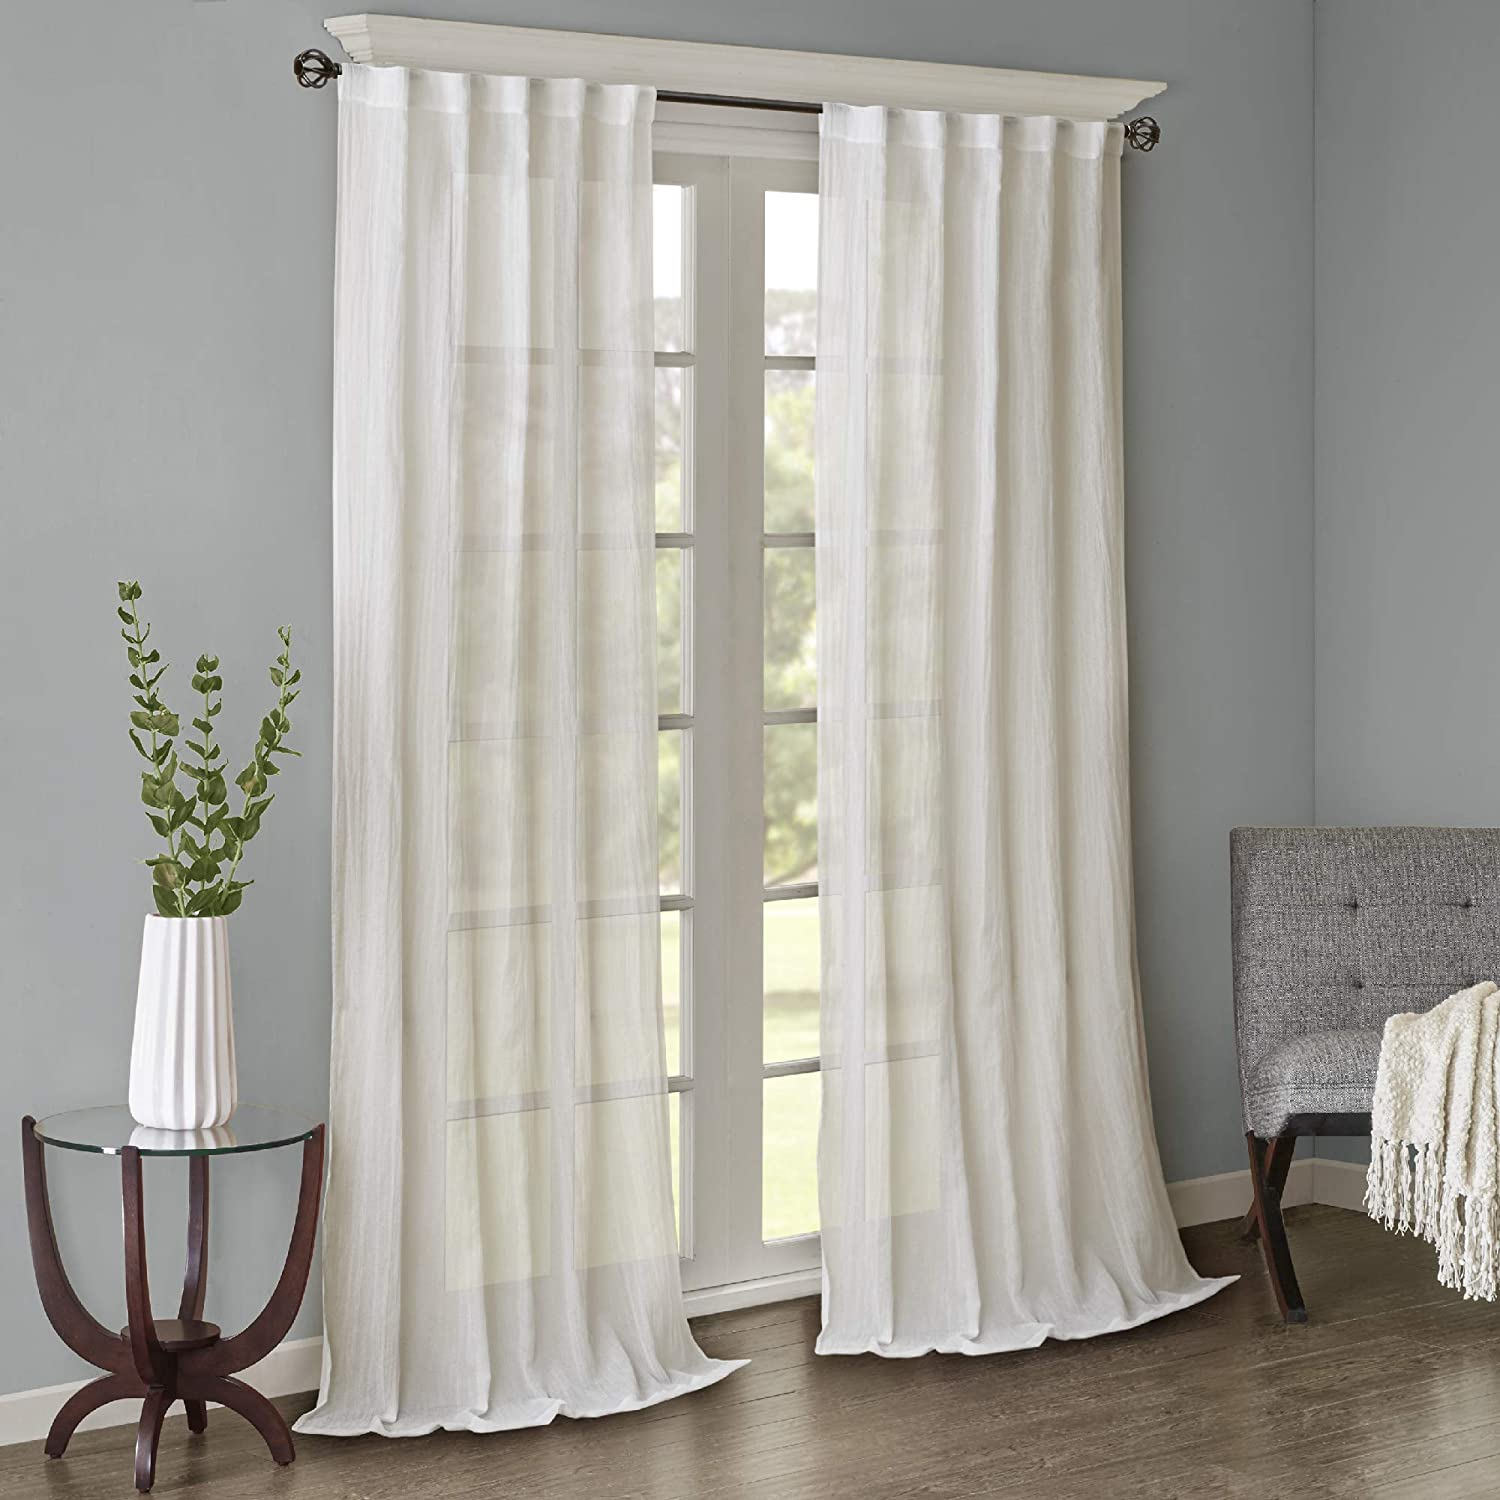 """Sheer Curtains For Bedroom, Modern Contemporary White Window Curtain For  Kitchen, Harper Solid Fabric Sheer Curtain , 6""""WX 6""""L , 6-Panel Pack"""